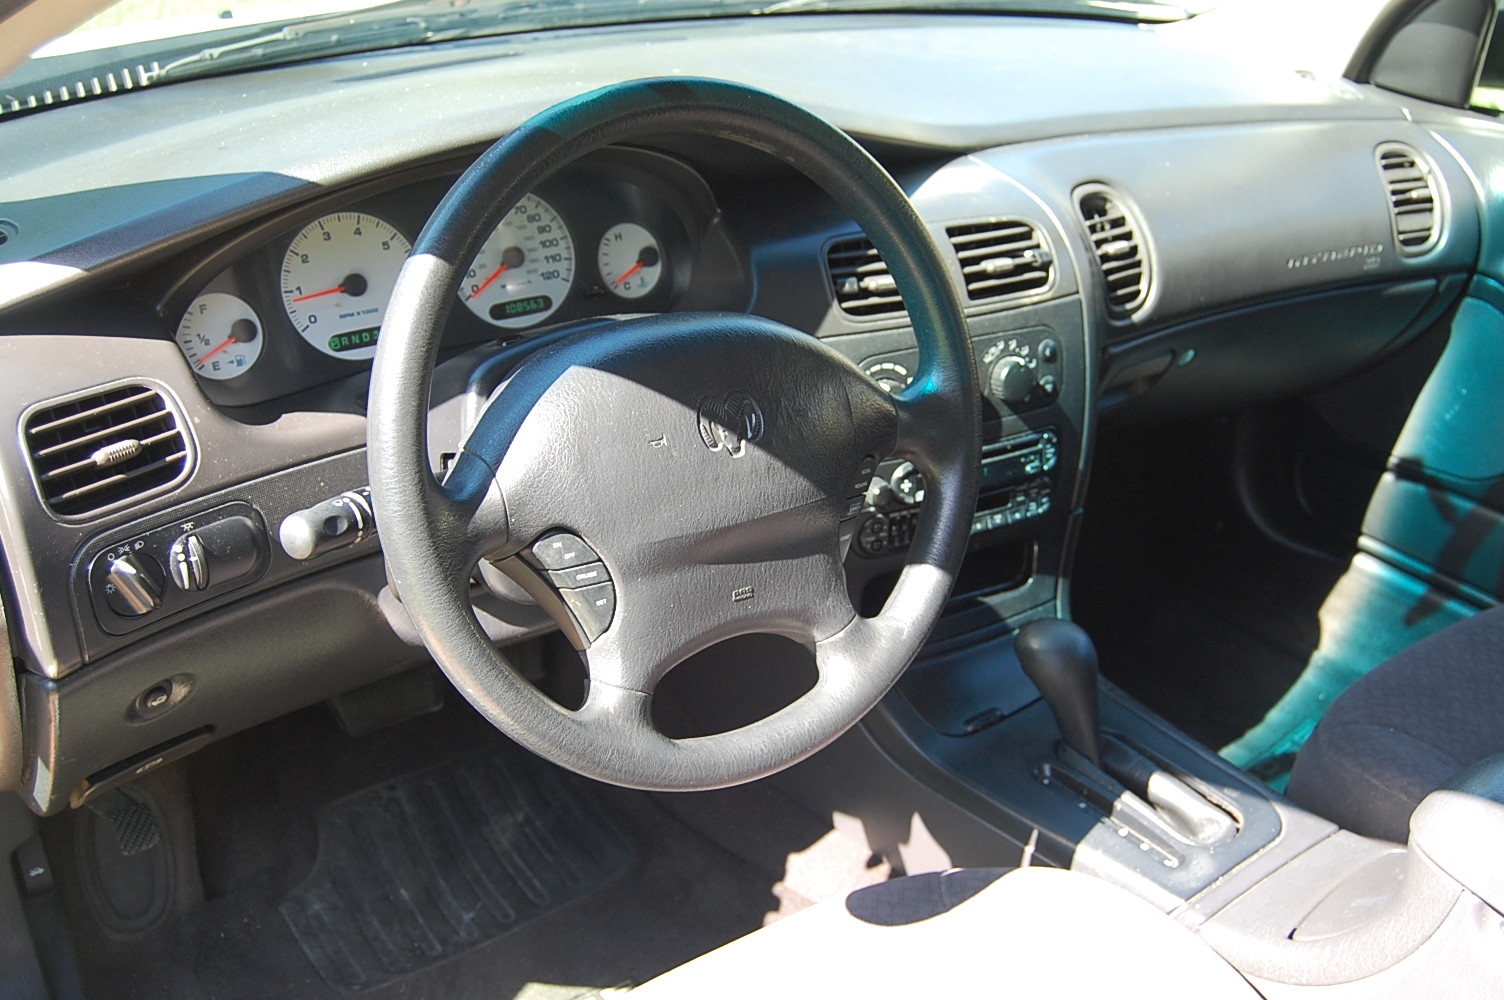 DODGE INTREPID interior